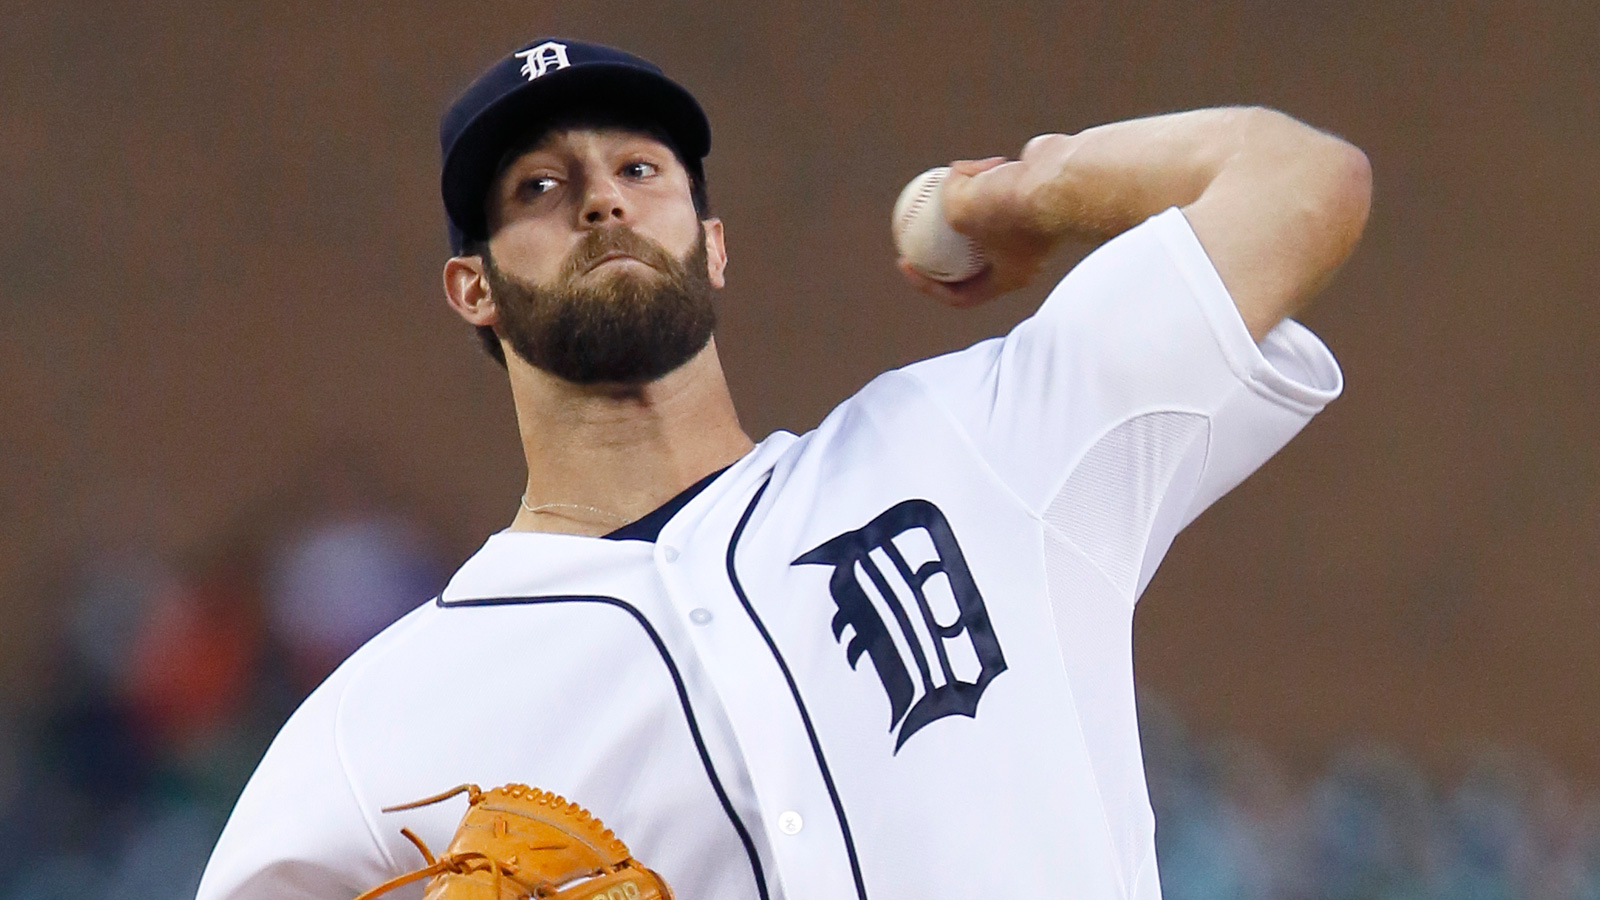 That time Daniel Norris threw 54 pitches in the first